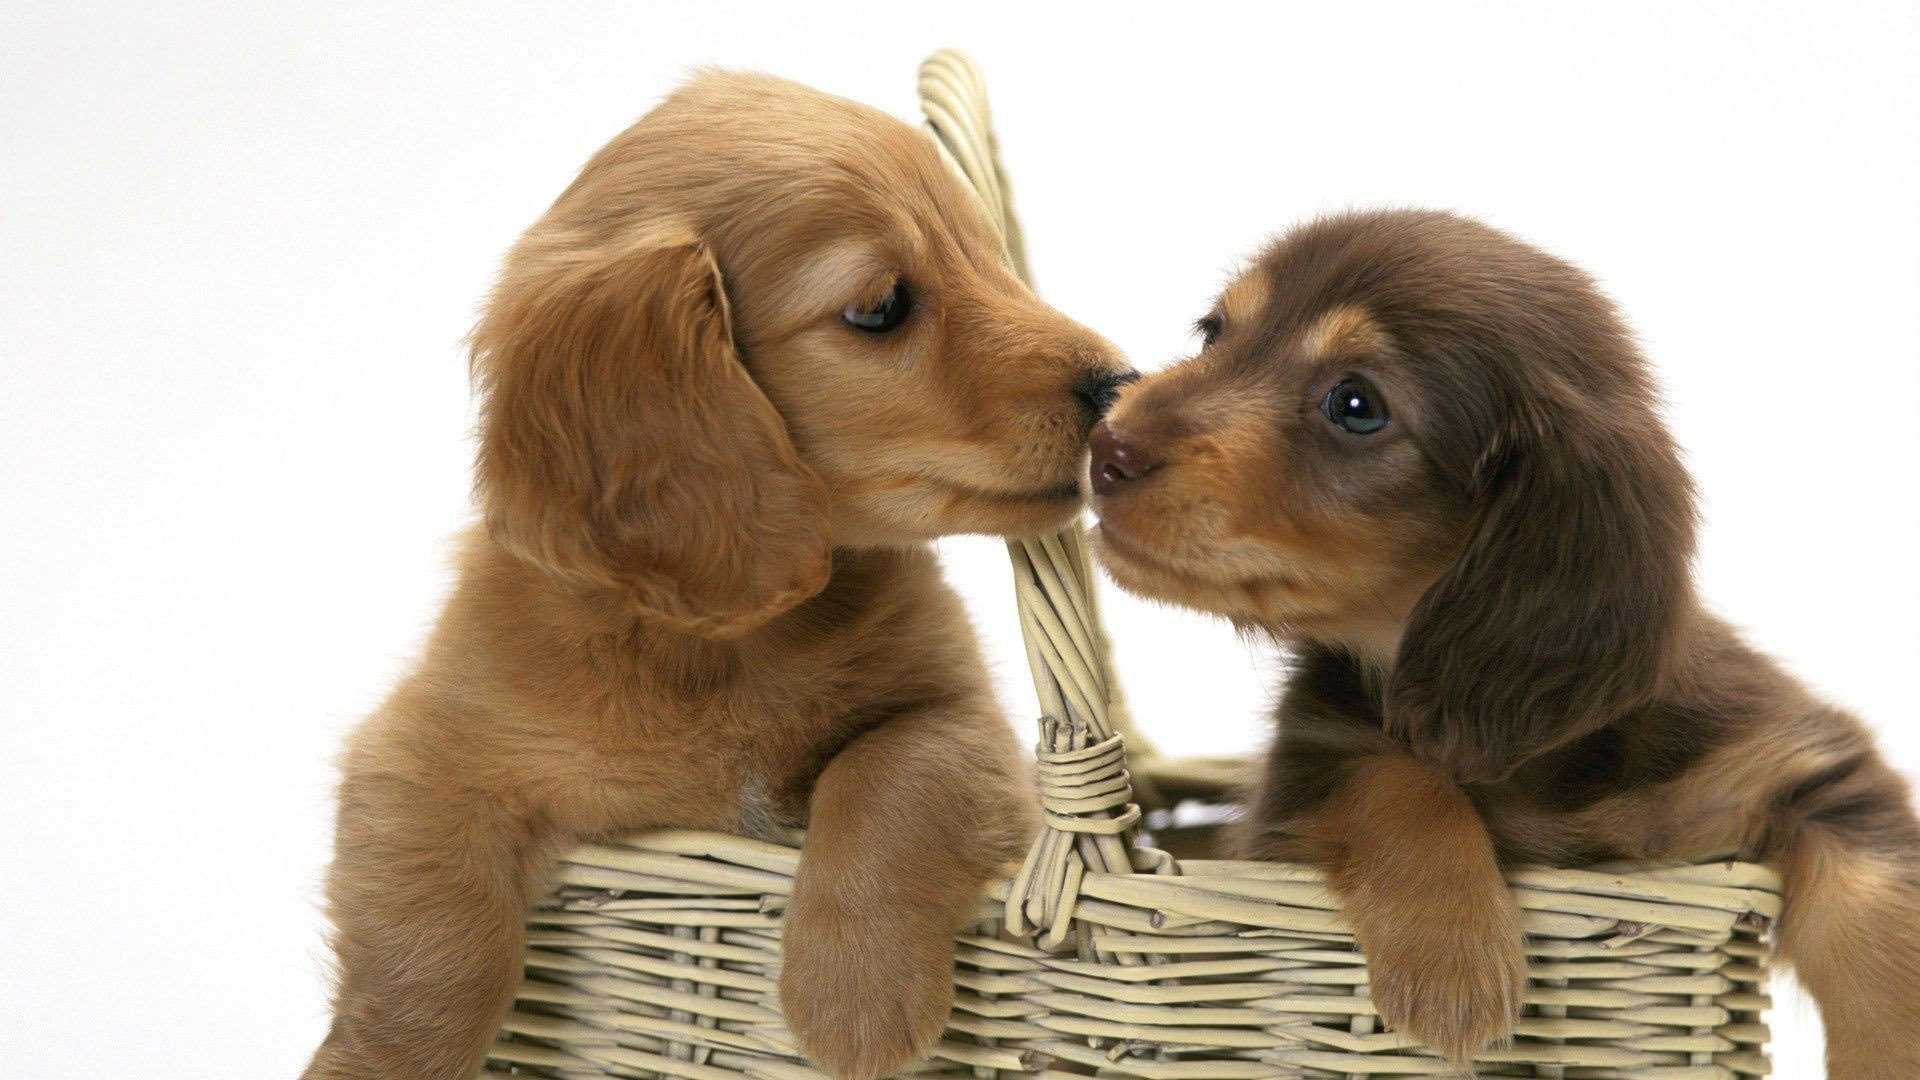 Cute Puppies Wallpaper Backgrounds Kissing Puppies Full Hd Fond D 233 Cran And Arri 232 Re Plan